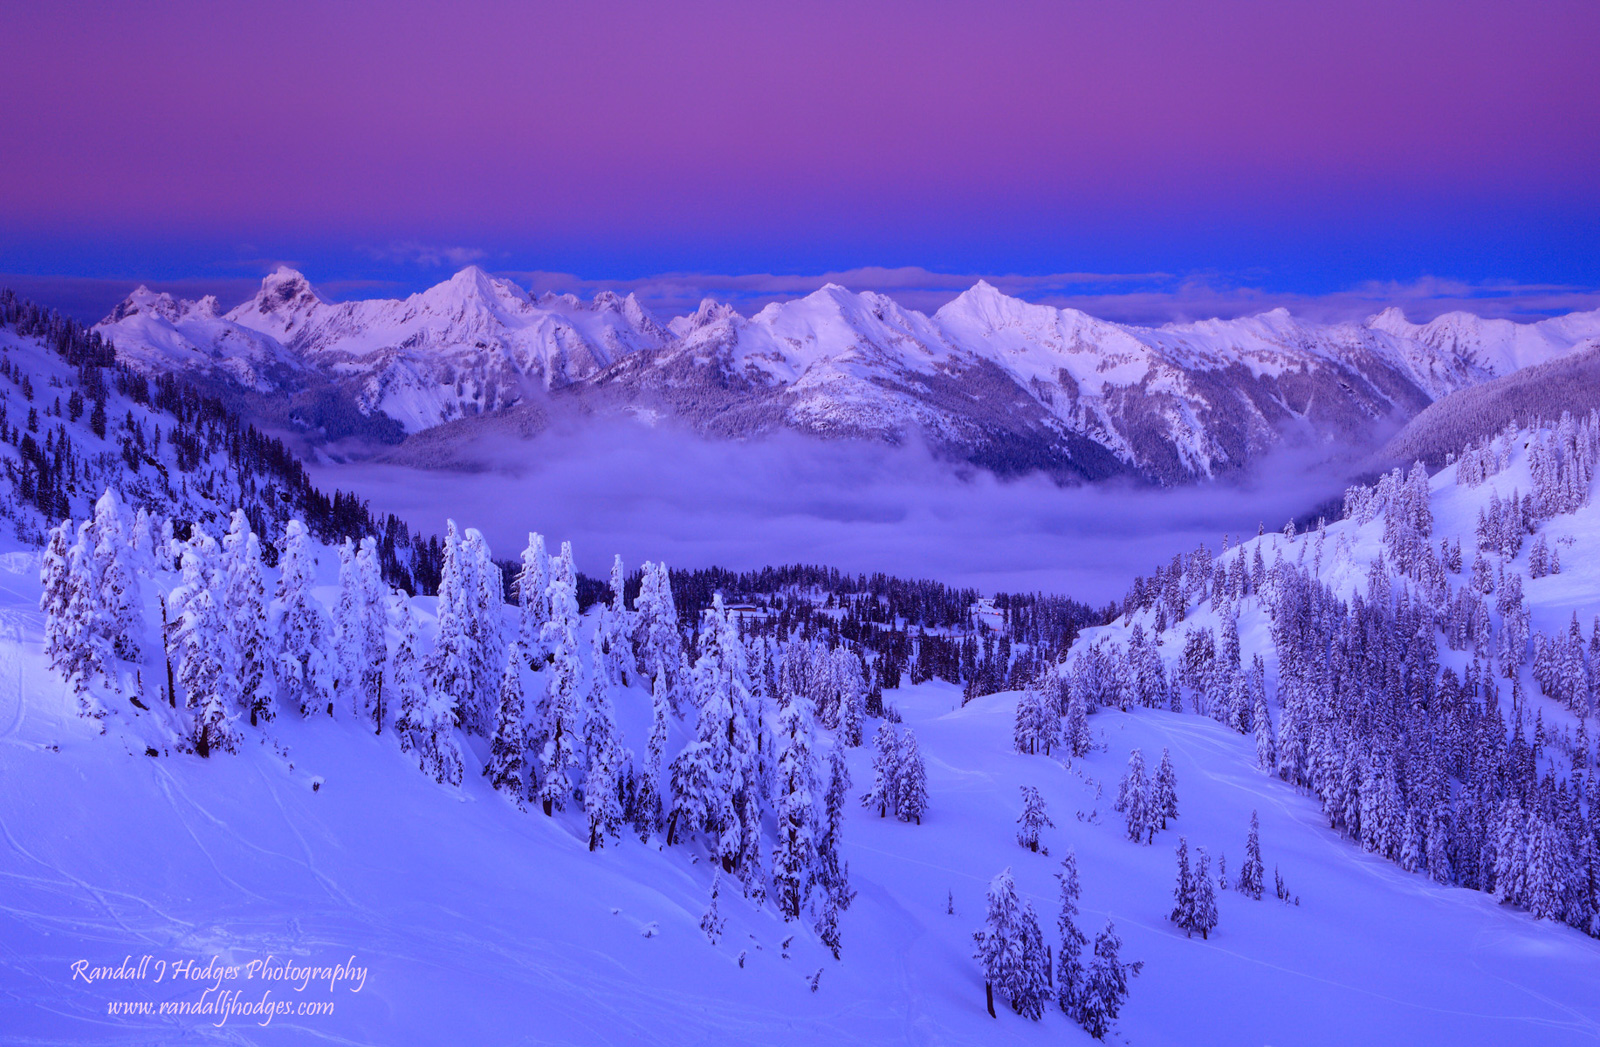 Above the Clouds, Alpenglow, Alpine Trees, Artist Point, Artist Ridge, Cascade Mountains, Cascade Range, Cascades, Destination, Foggy Basin, Mt Baker, Mt Baker National Recreation Area, Mt Baker-Snoqu, photo